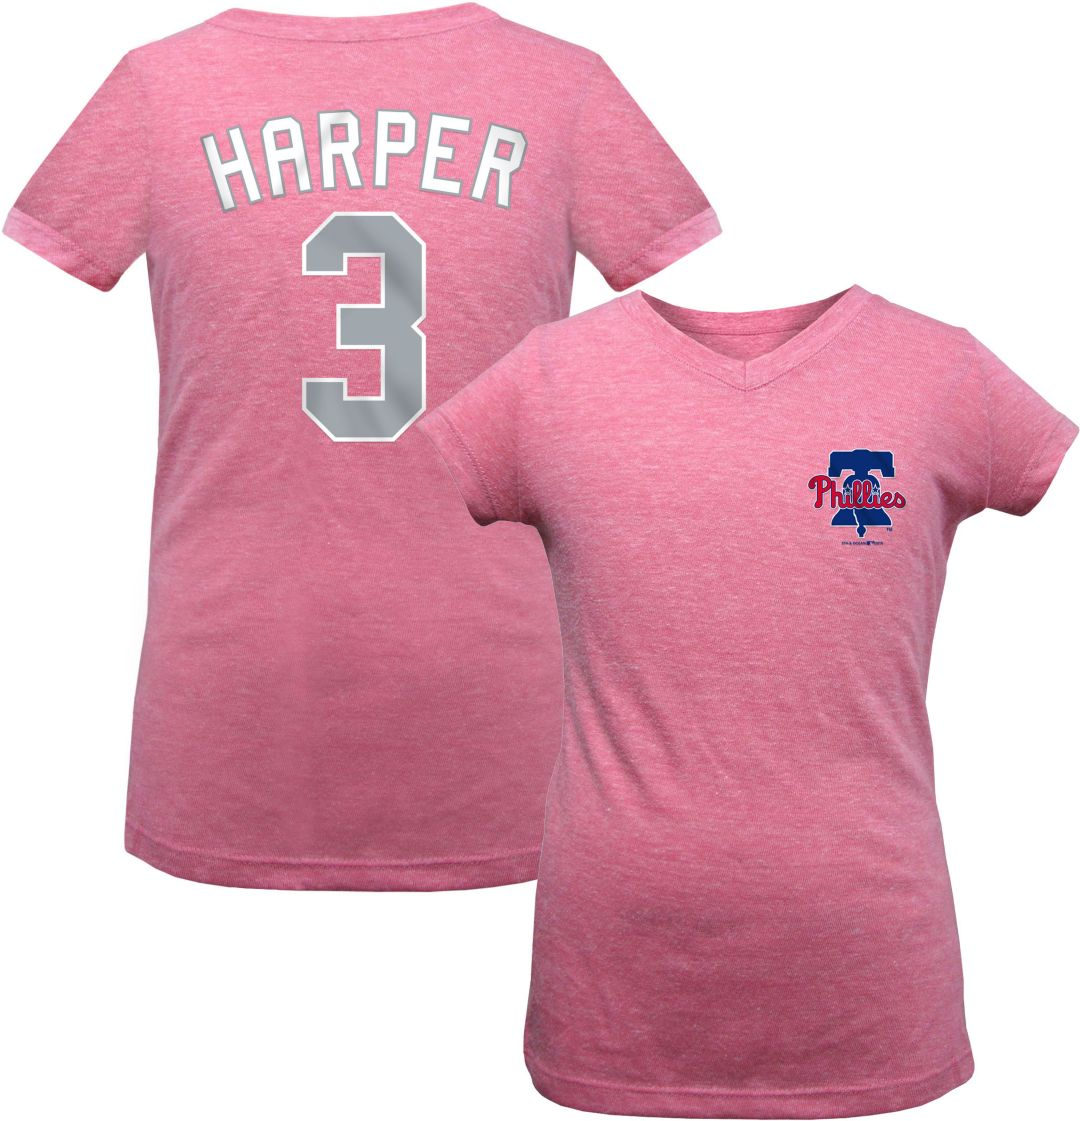 on sale 23f88 05ca8 New Era Youth Girls' Philadelphia Phillies Bryce Harper Tri-Blend T-Shirt